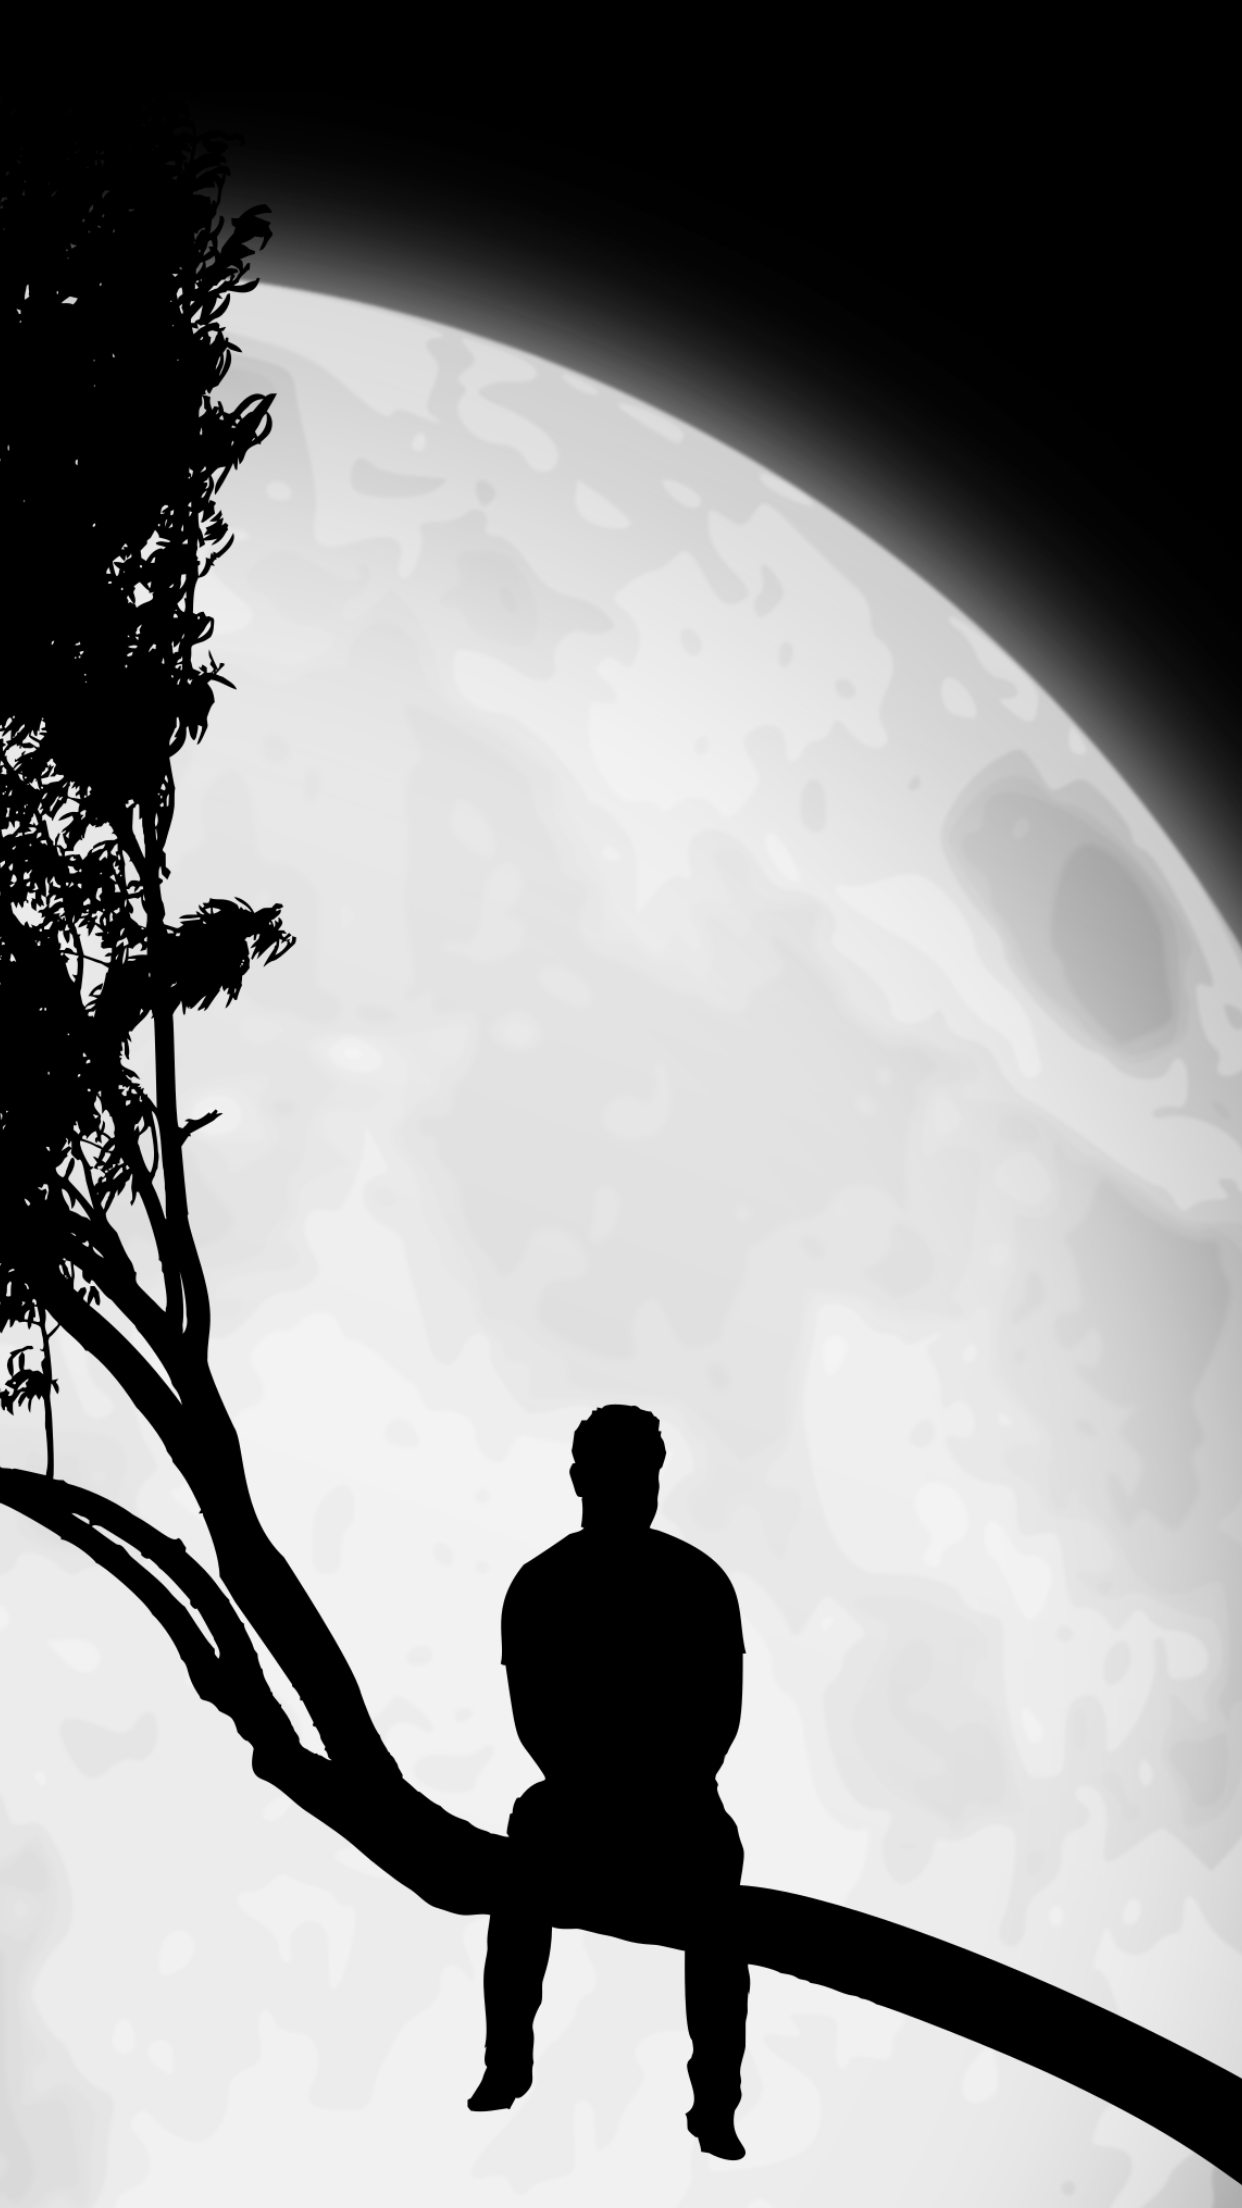 Alone with moon alone boy wallpaper boys wallpaper iphone wallpaper alone life